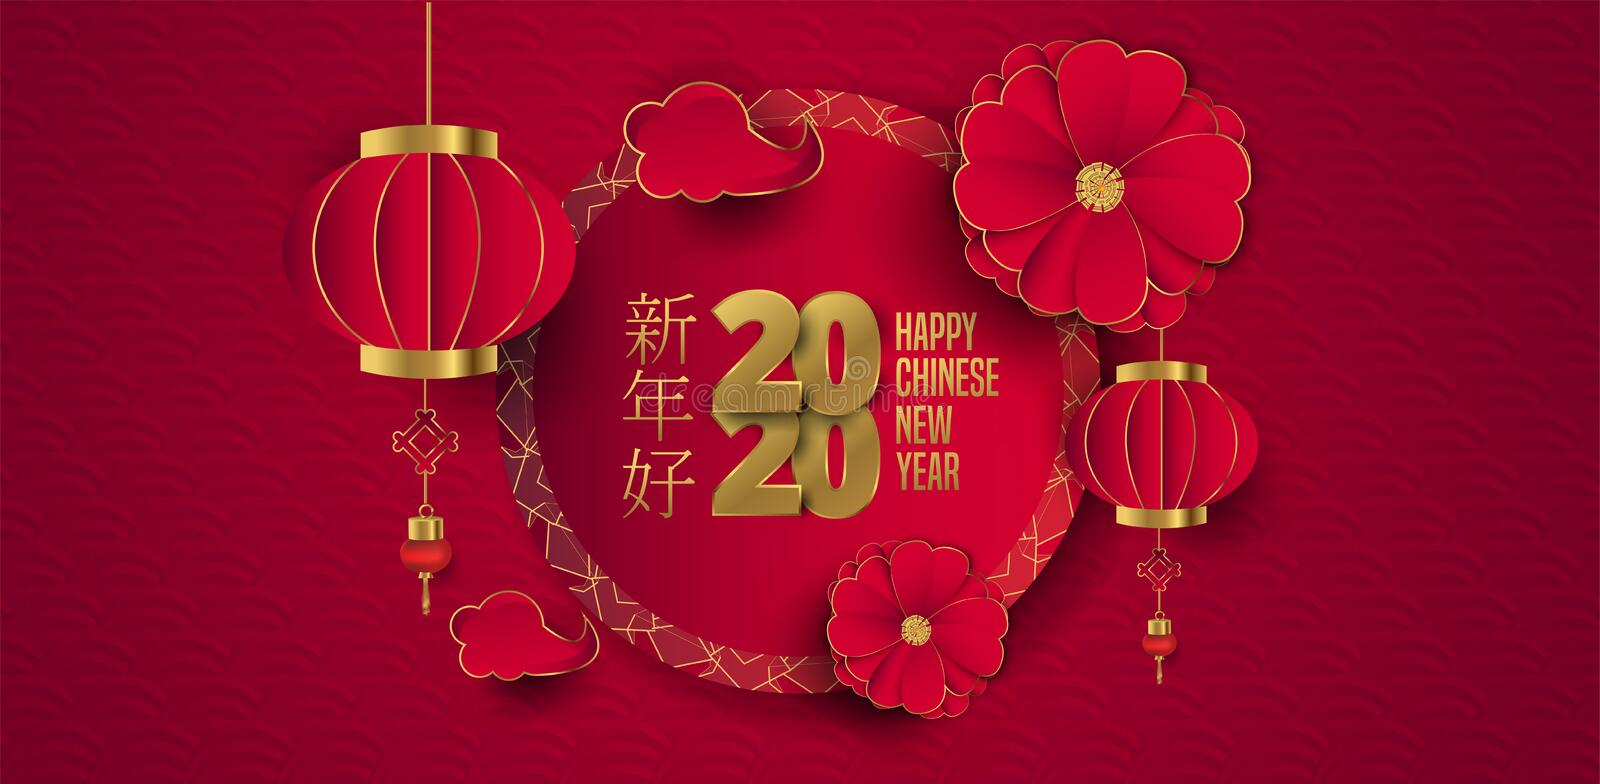 Chinese New Year 2020 traditional red greeting card illustration with traditional asian decoration,  flowers, lanterns and clouds stock illustration